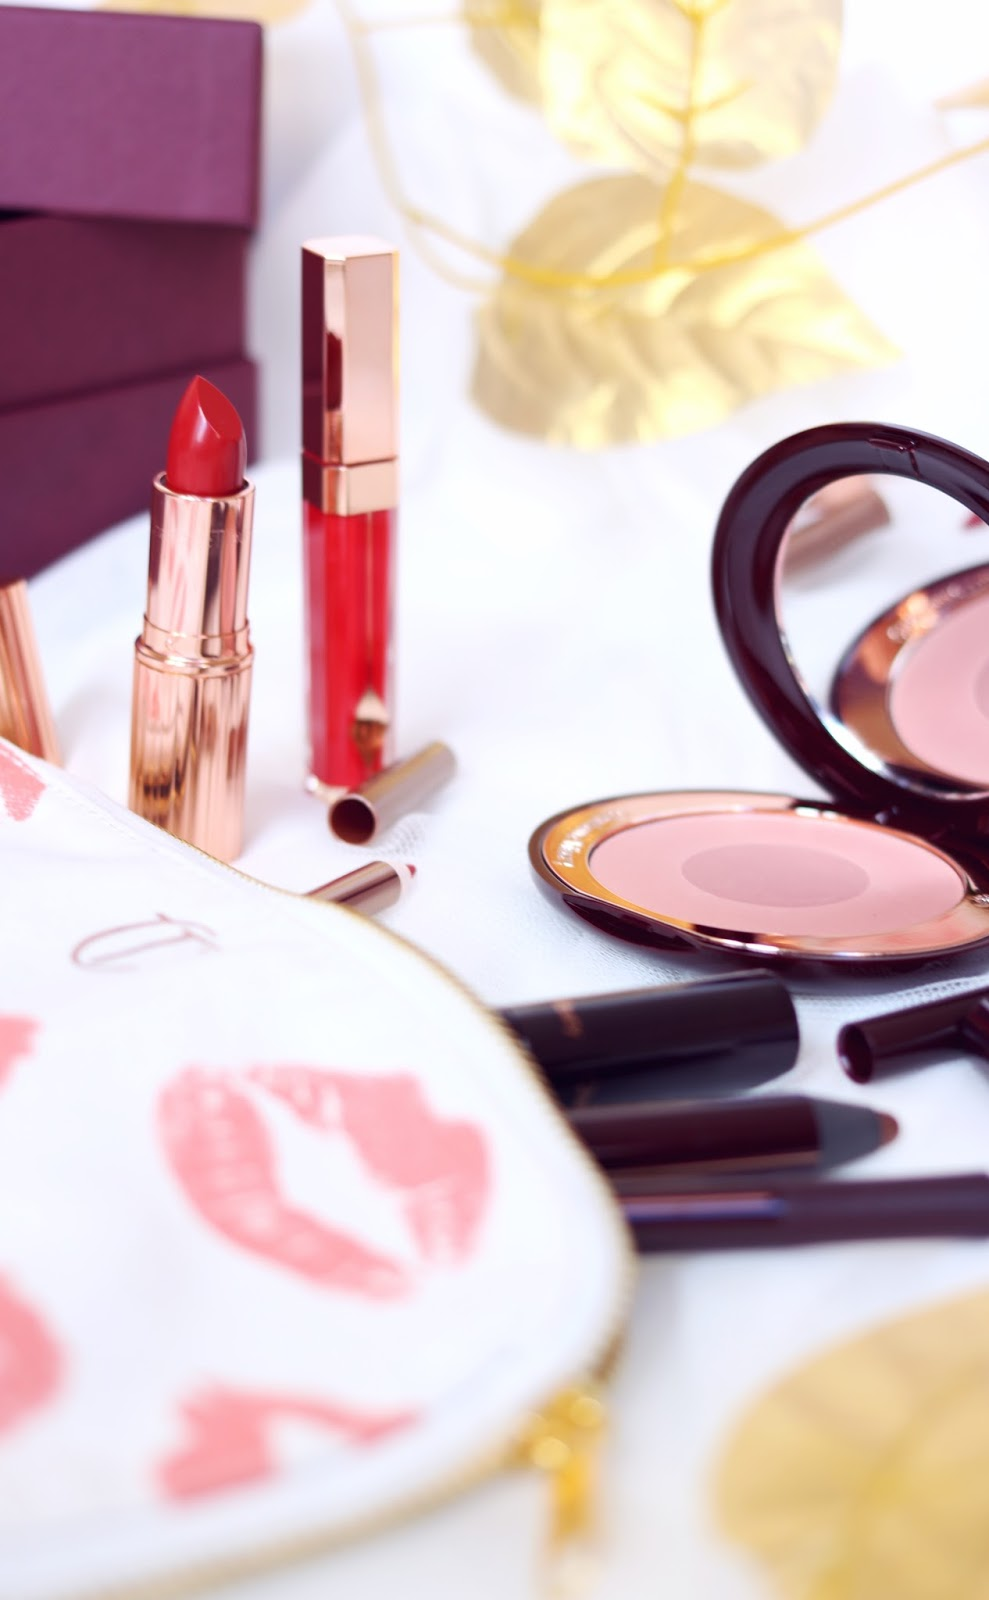 Charlotte Tilbury 'The Bombshell' Look